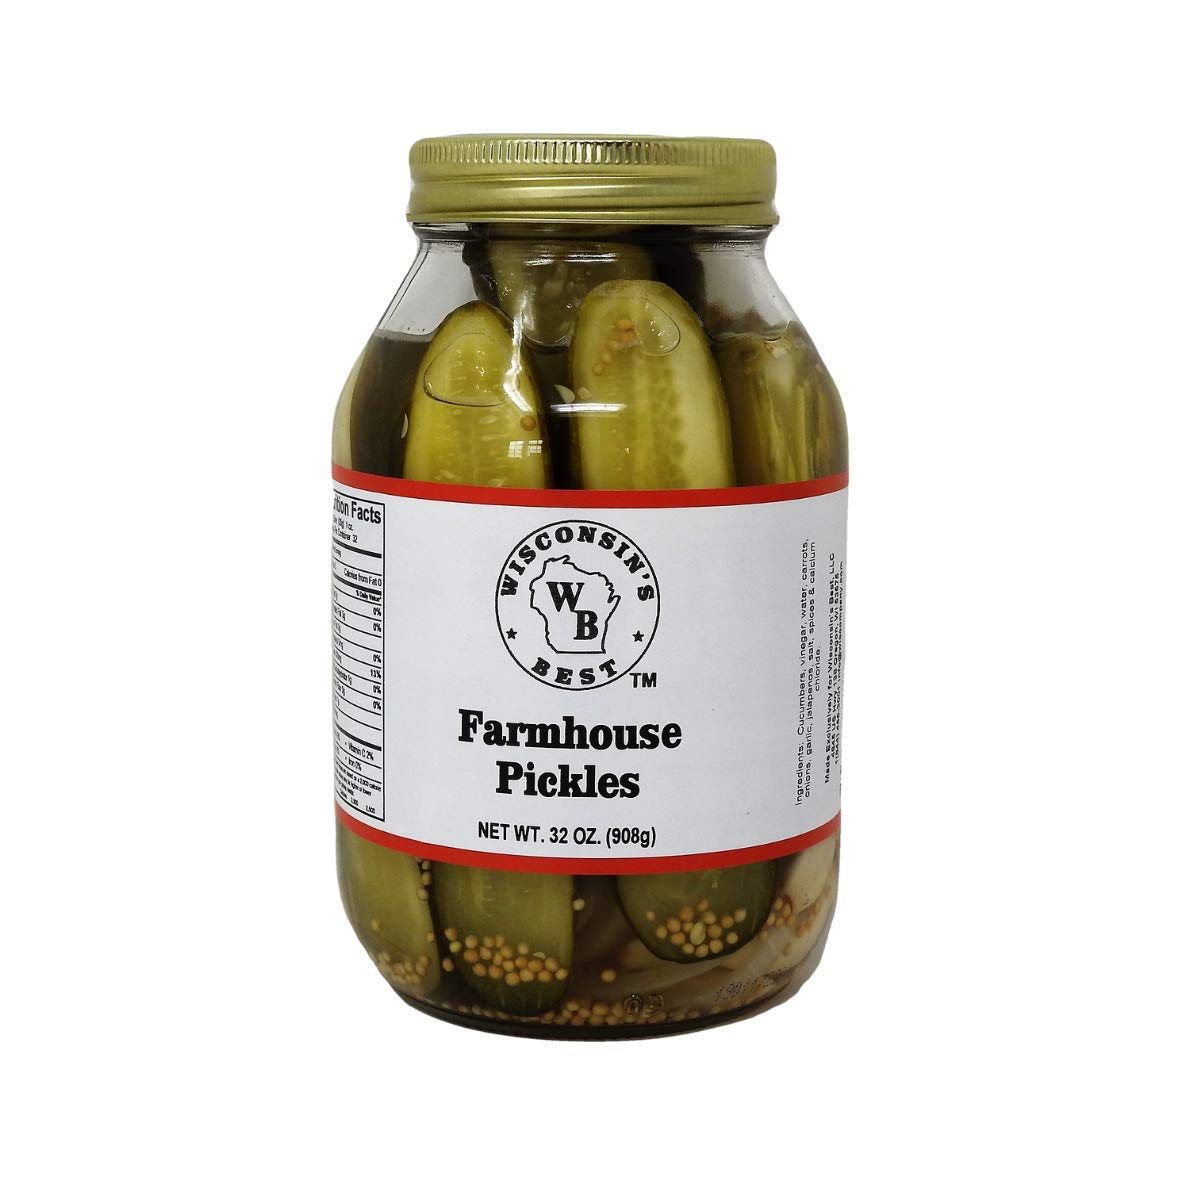 Wisconsin's Best Farmhouse Pickles 64oz. (2 Pack). Pickle Spears, Bulk Food Item, Amazon Grocery Best Pickles.